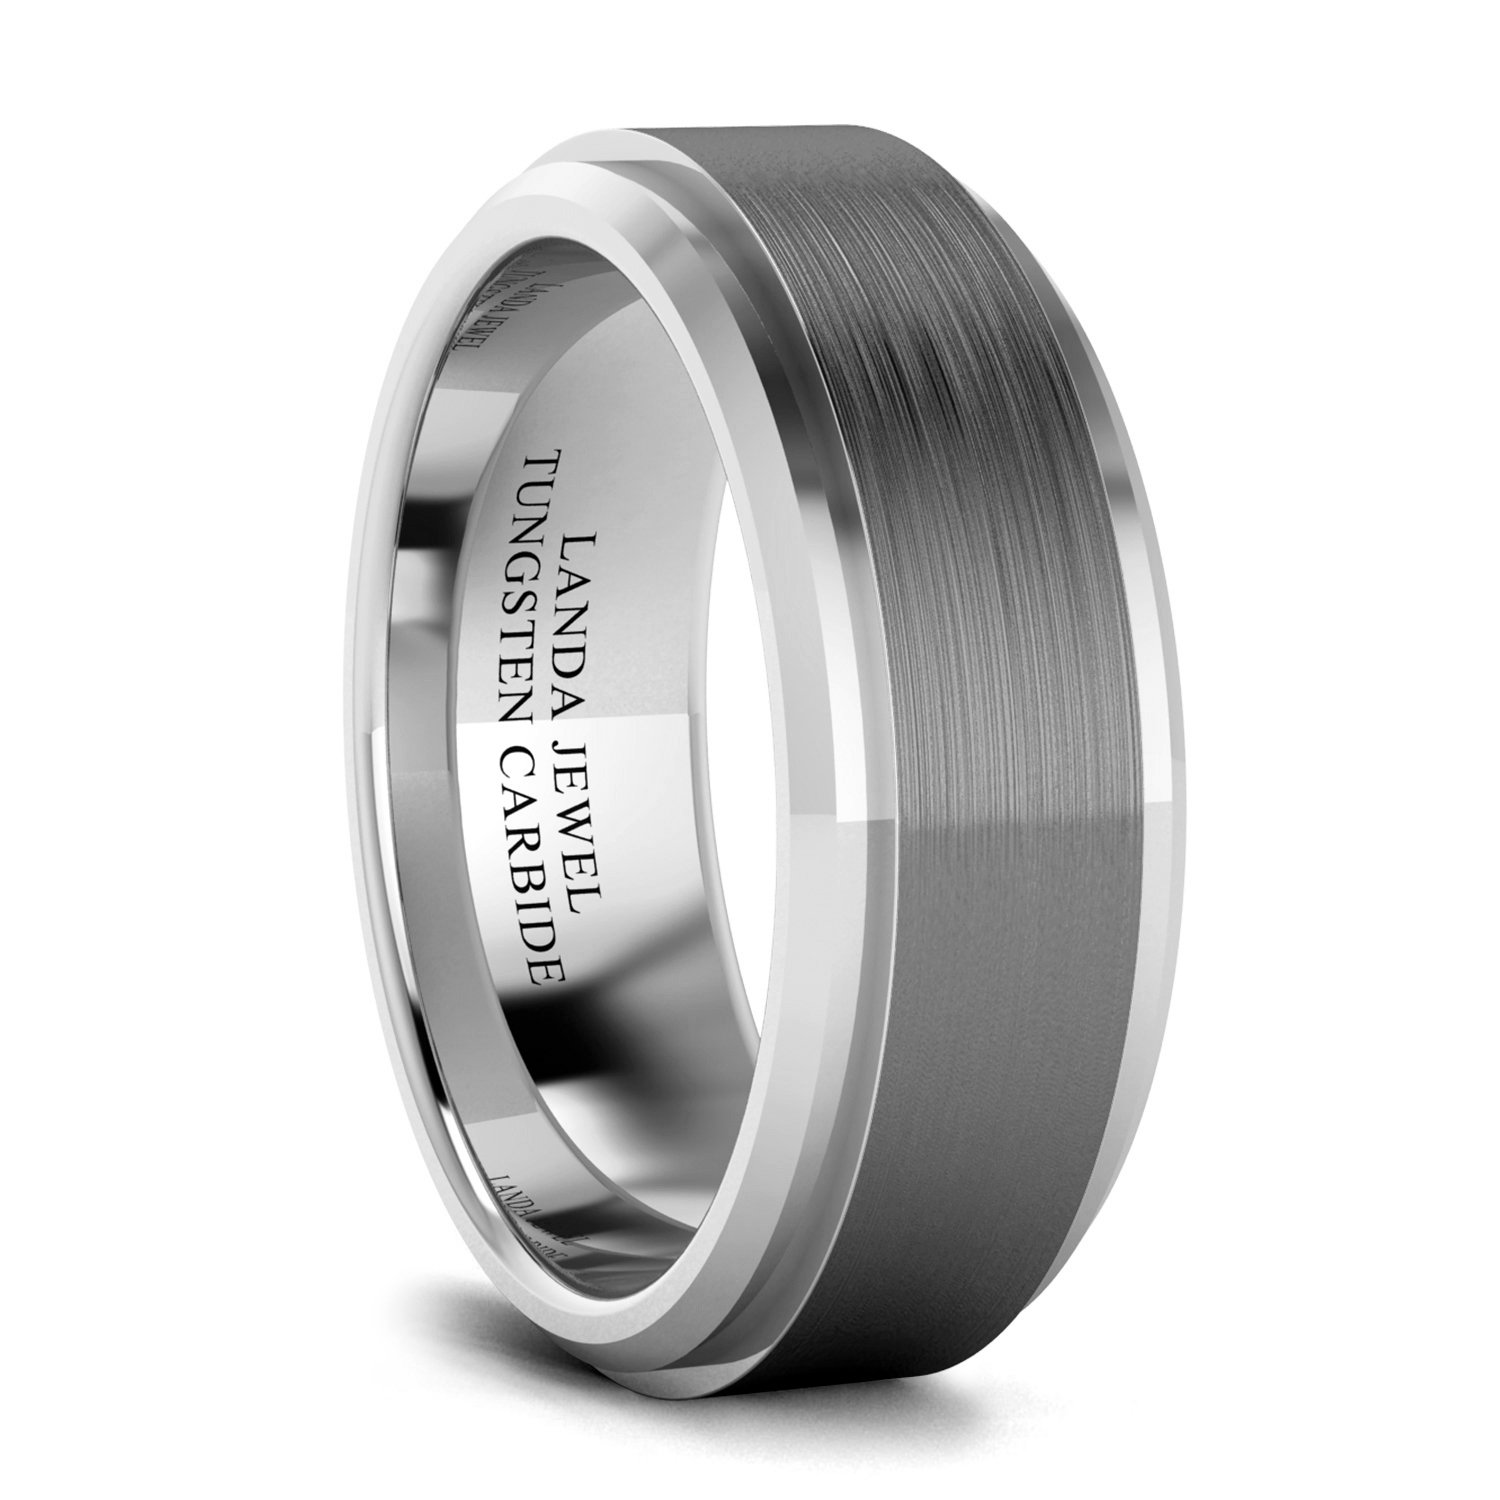 Tungsten Wedding Band Ring 6mm wide for Men Women Comfort Fit Black Brushed finish centre and white Polished edges and inside Lifetime Satisfaction